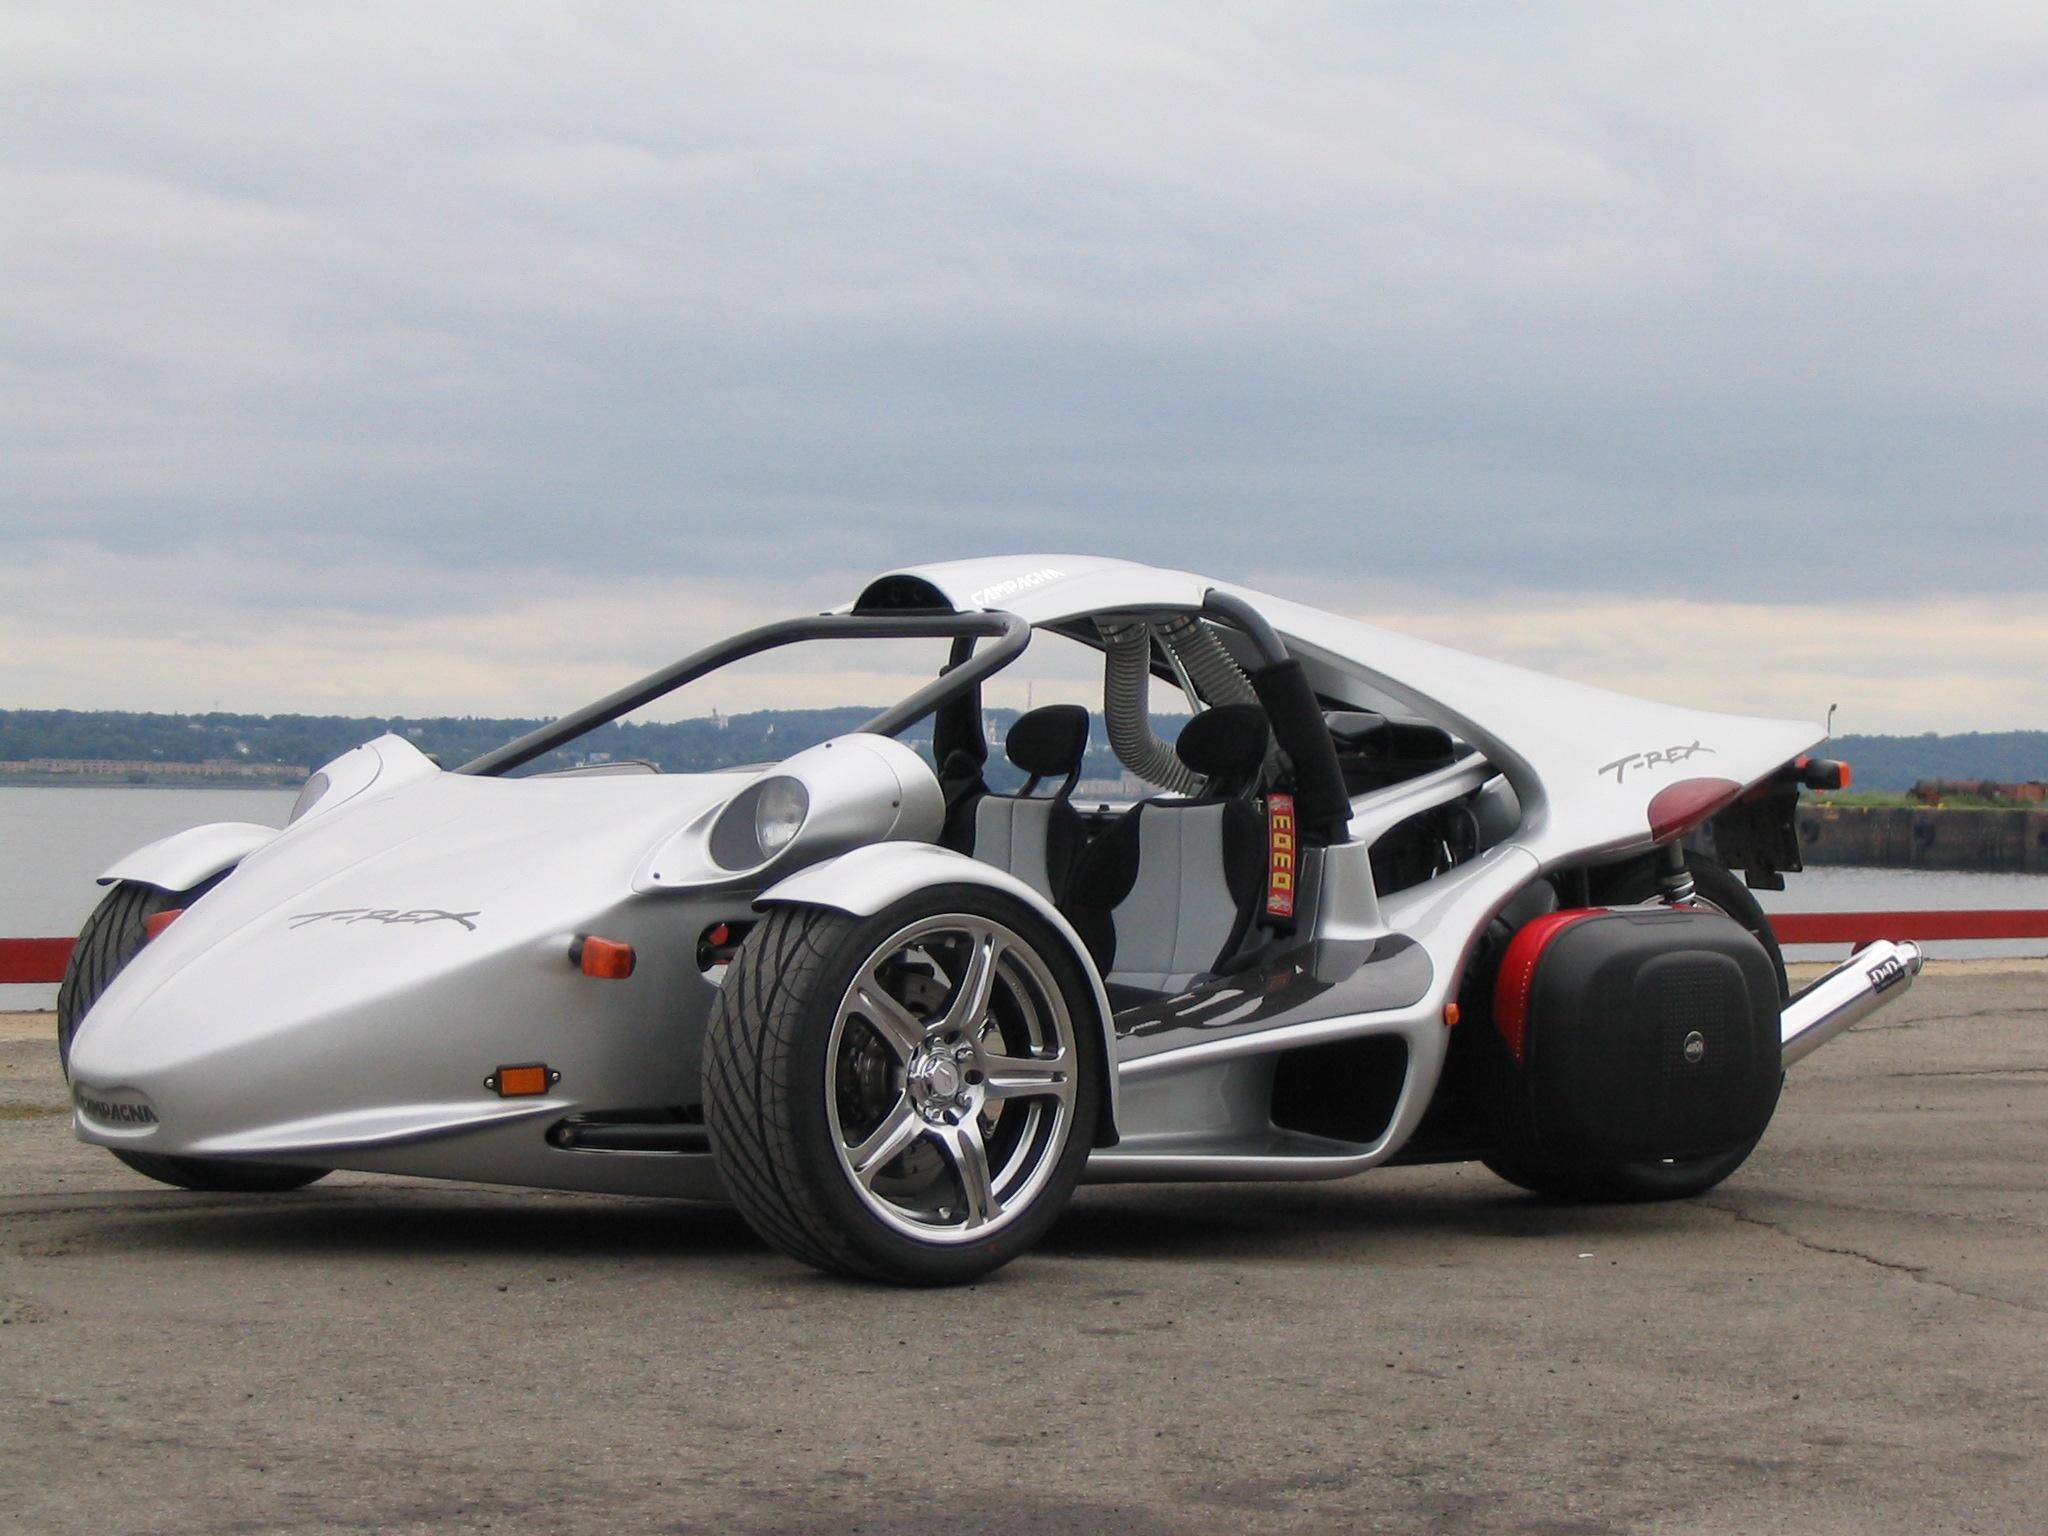 Campagna T Rex photos Gallery with 15 pics CarsBase